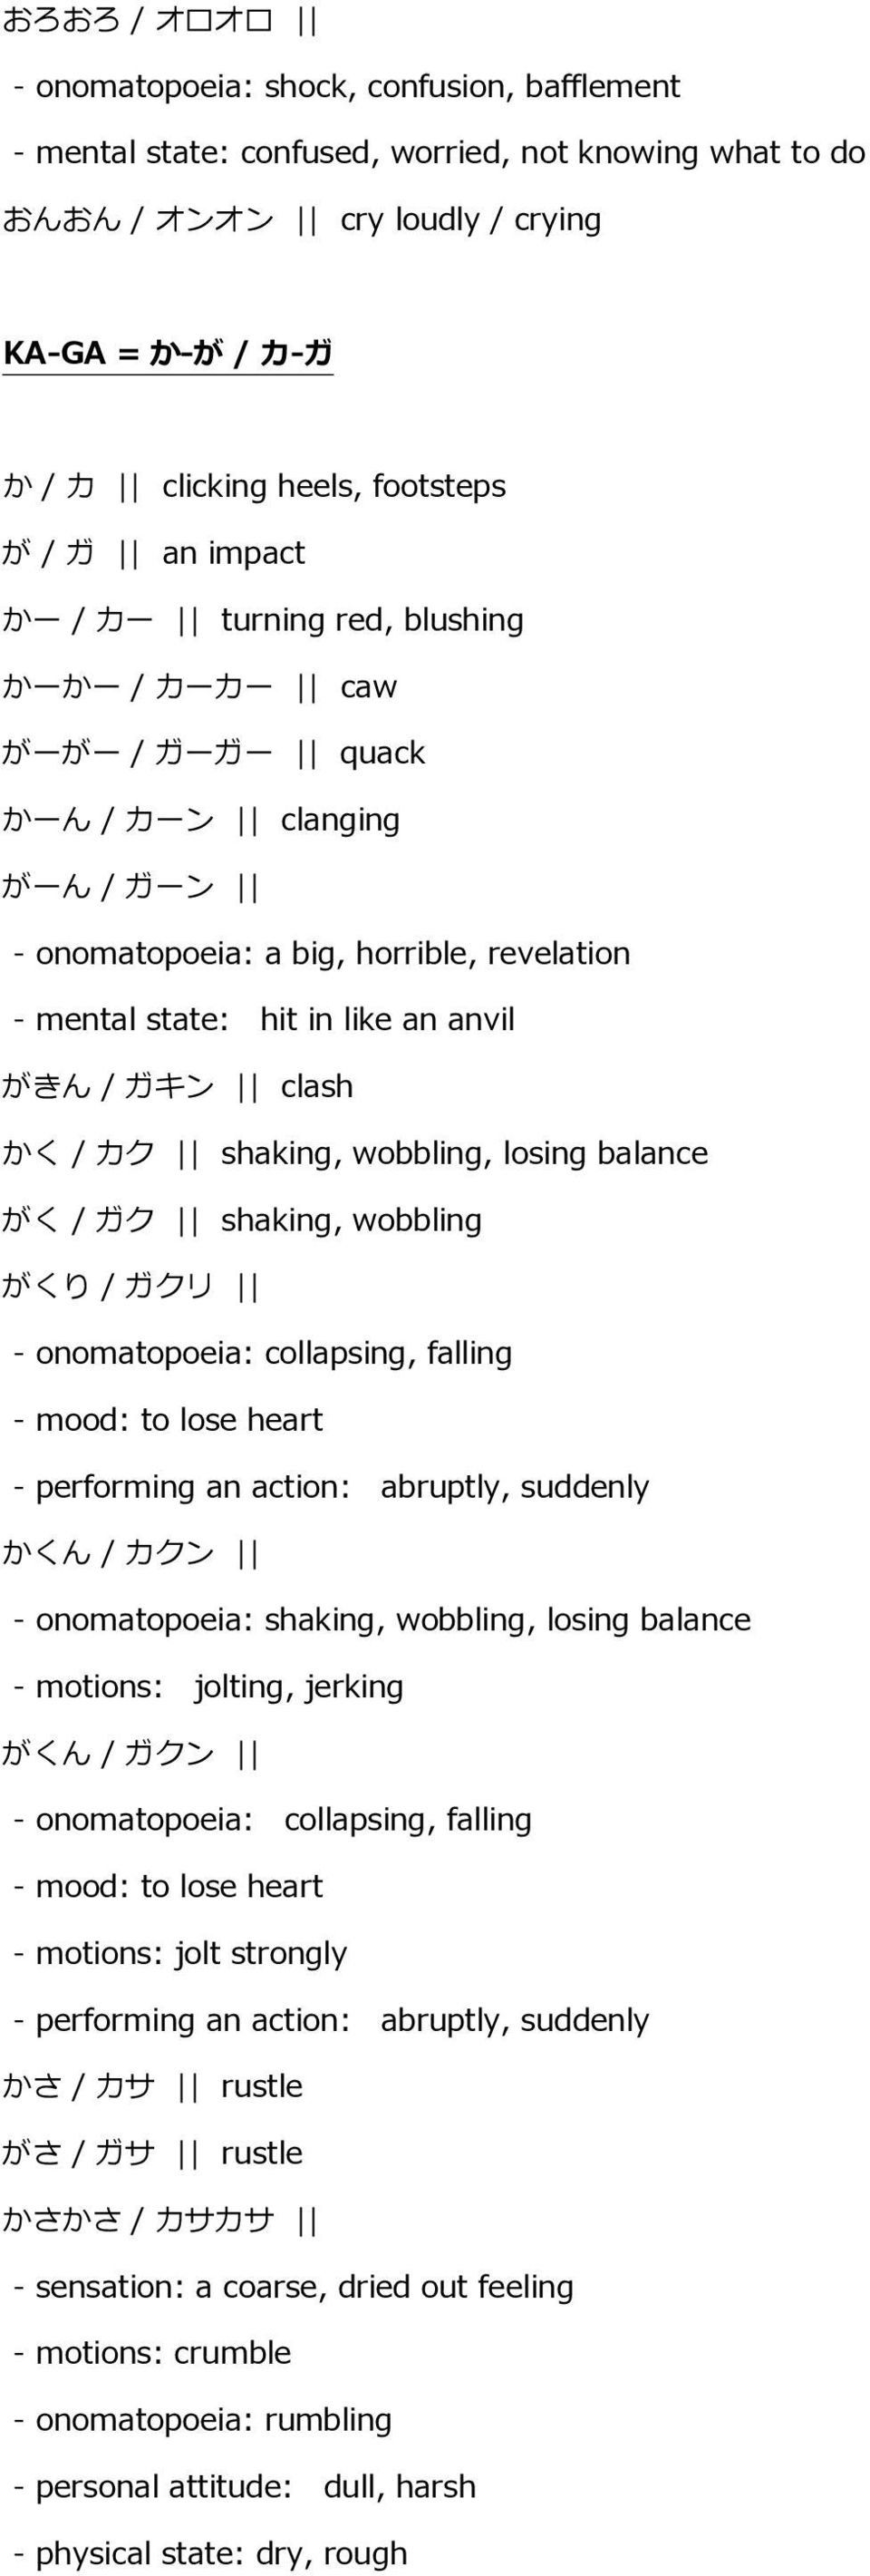 clash かく / カク shaking, wobbling, losing balance がく / ガク shaking, wobbling がくり / ガクリ - onomatopoeia: collapsing, falling - mood: to lose heart - performing an action: abruptly, suddenly かくん / カクン -